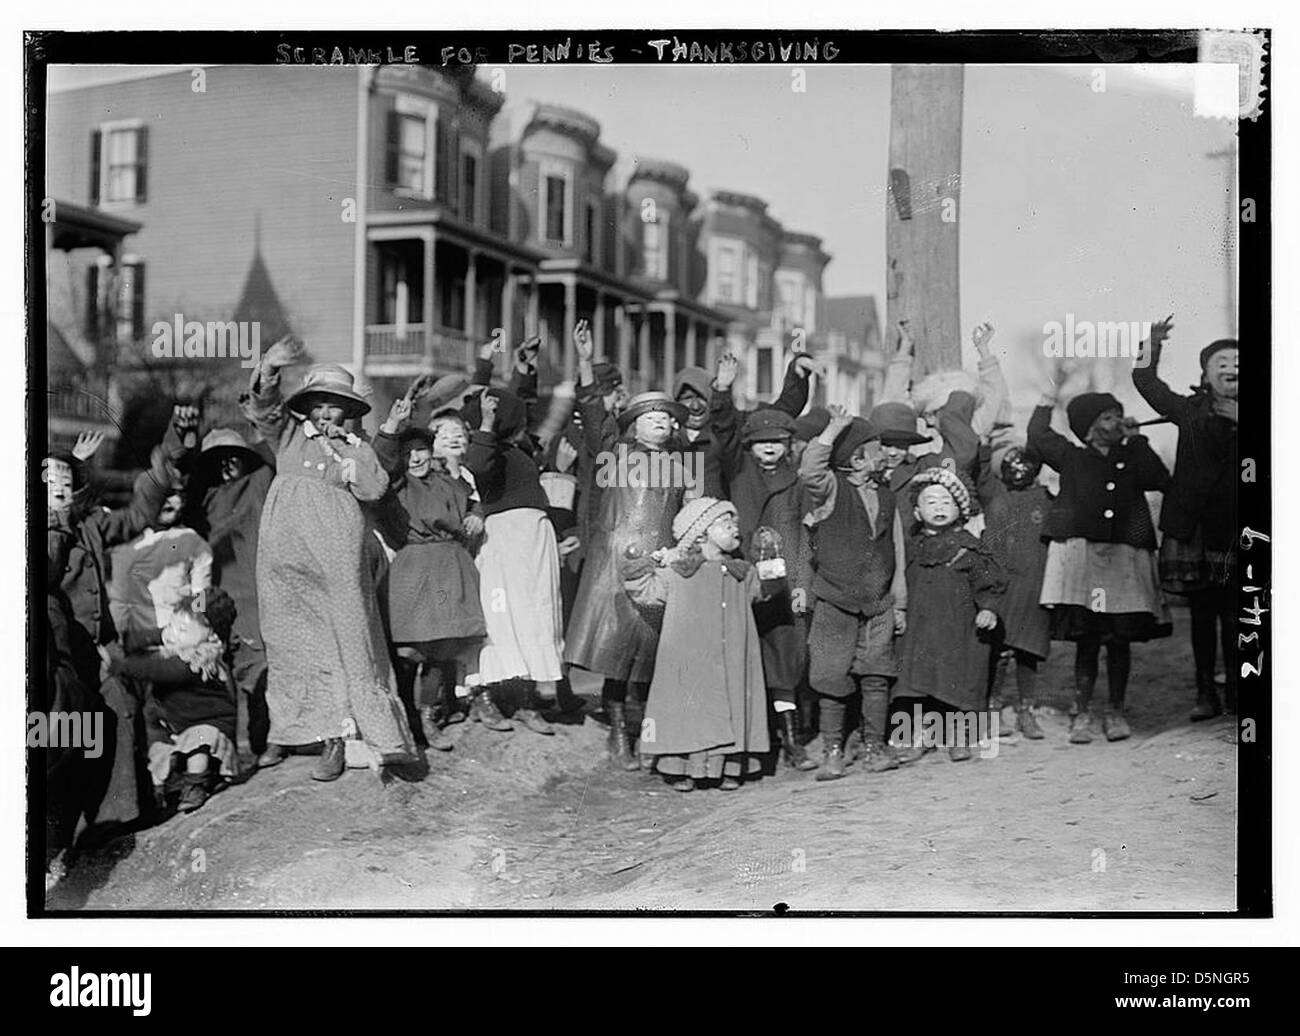 Scramble for pennies - Thanksgiving (LOC) - Stock Image